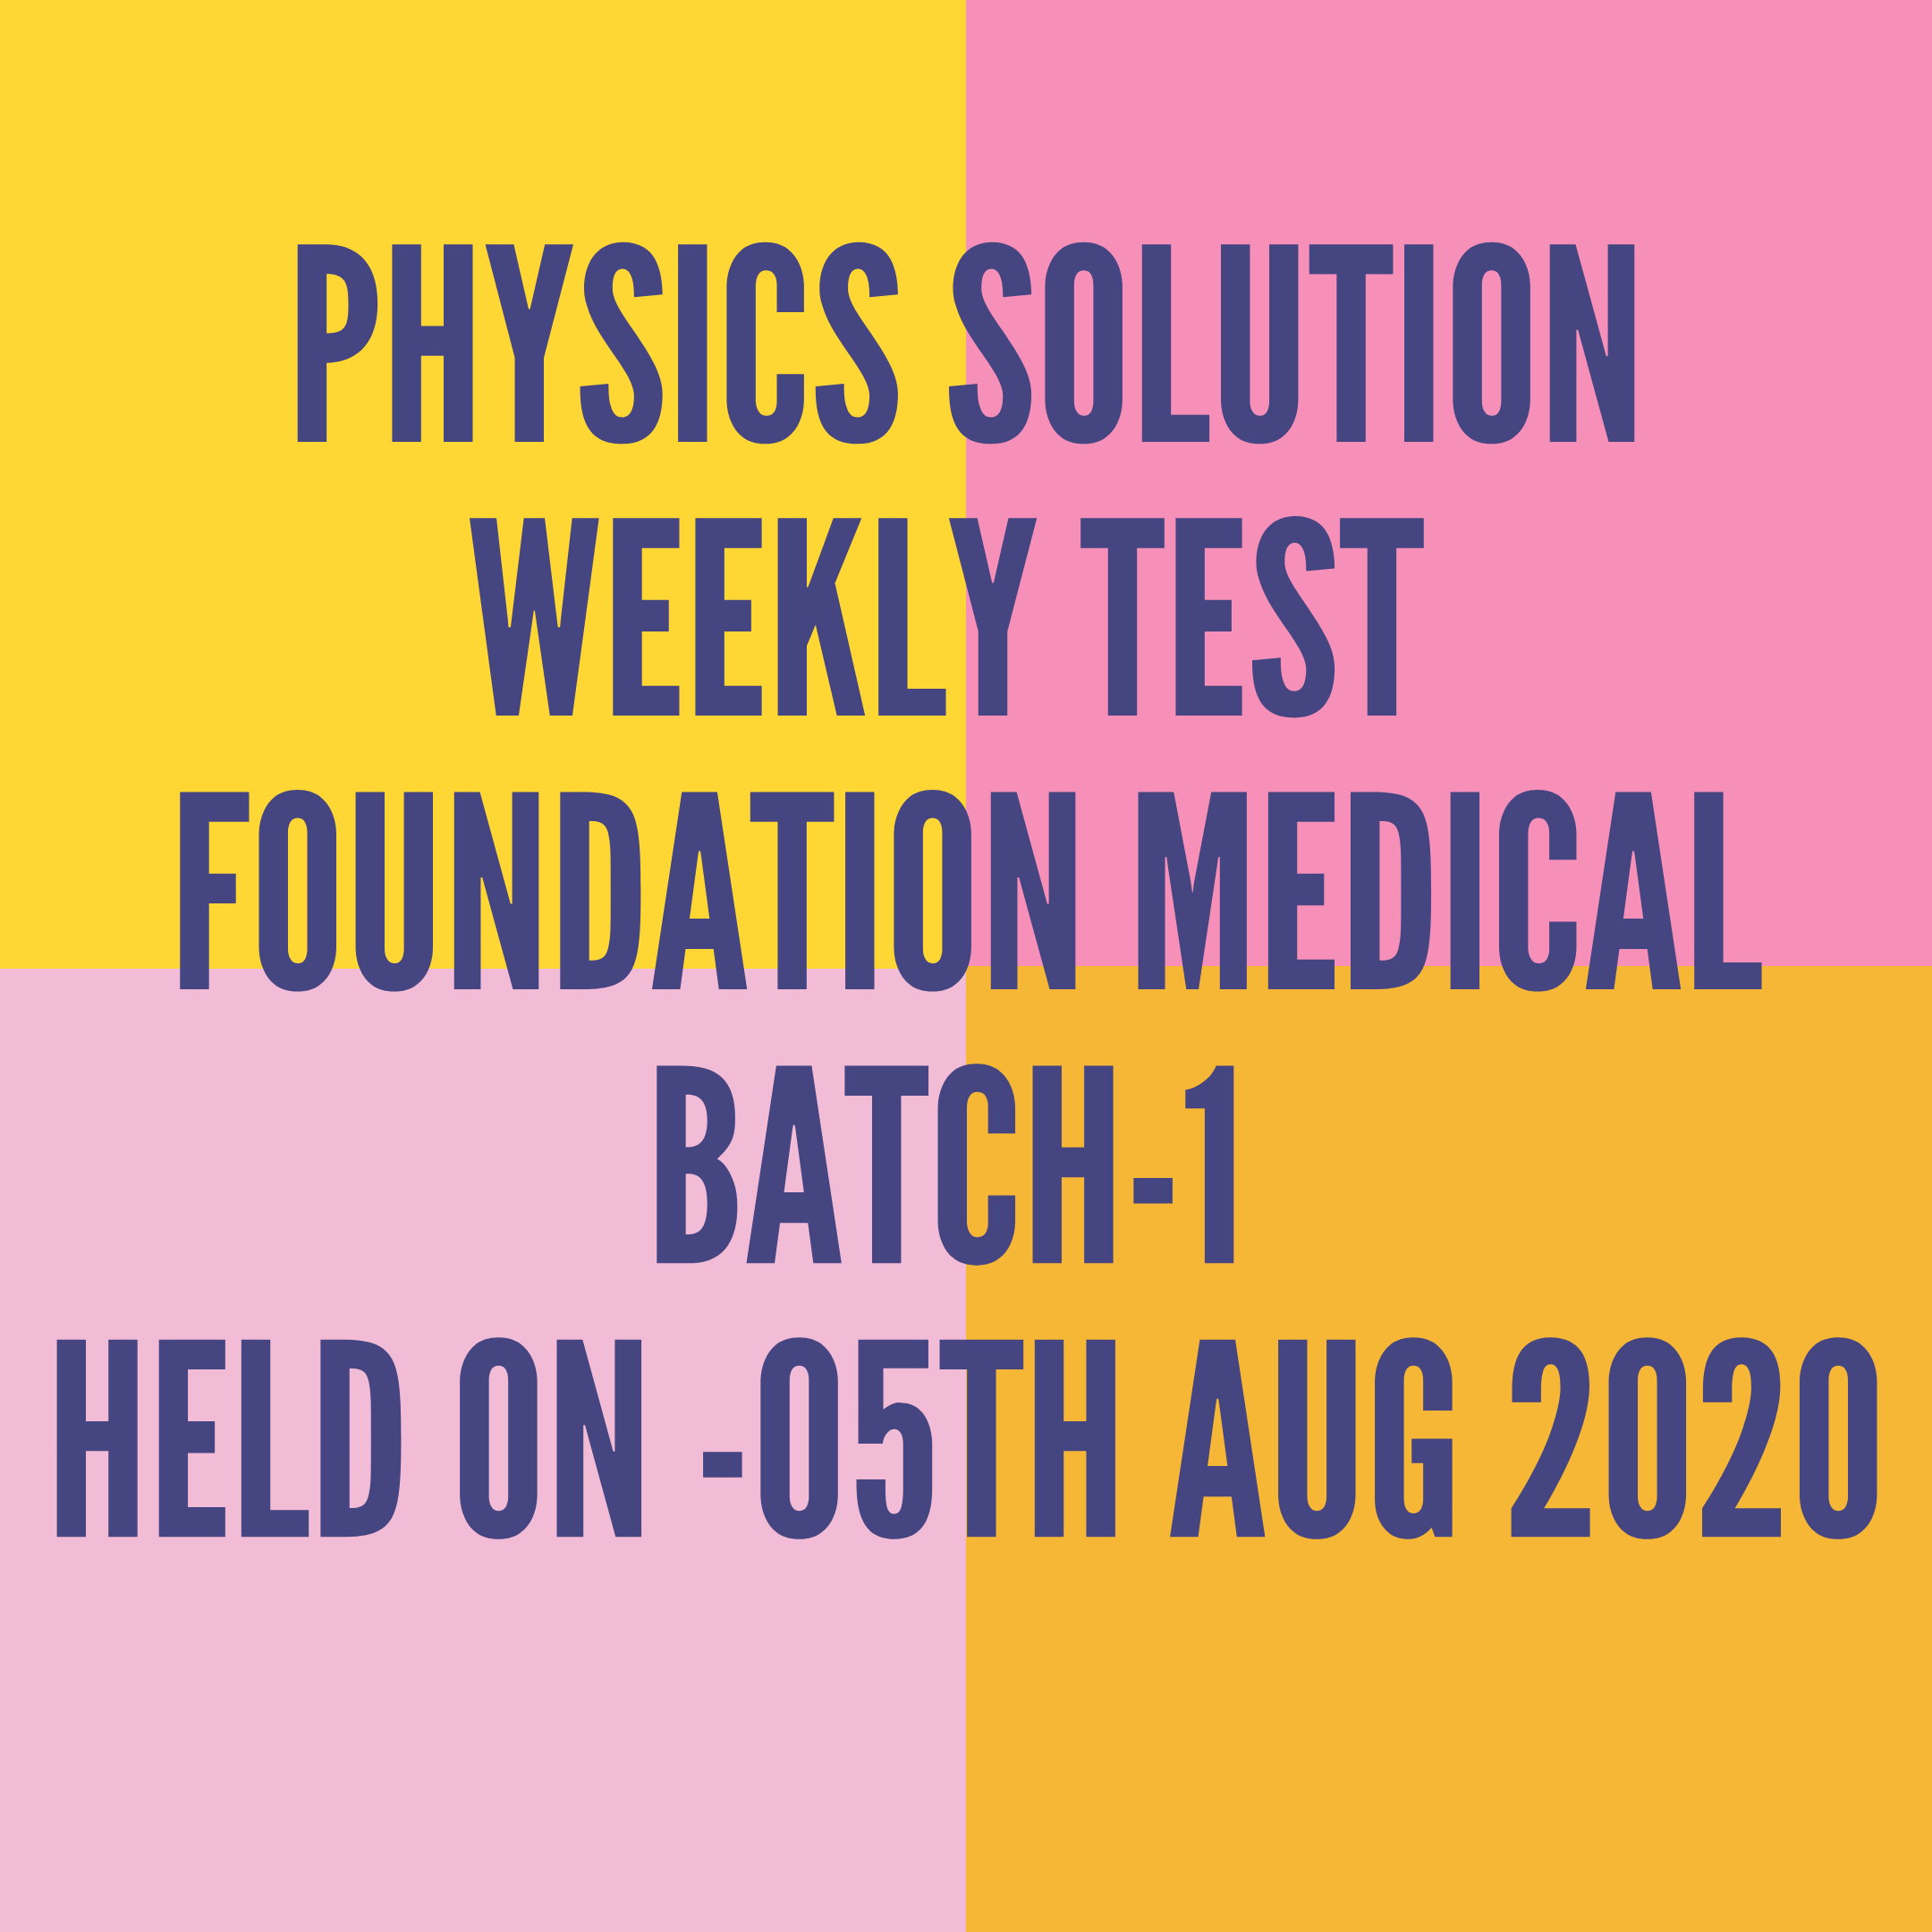 PHYSICS SOLUTION WEEKLY TEST FOUNDATION MEDICAL-BATCH-1 HELD ON -05TH AUG 2020